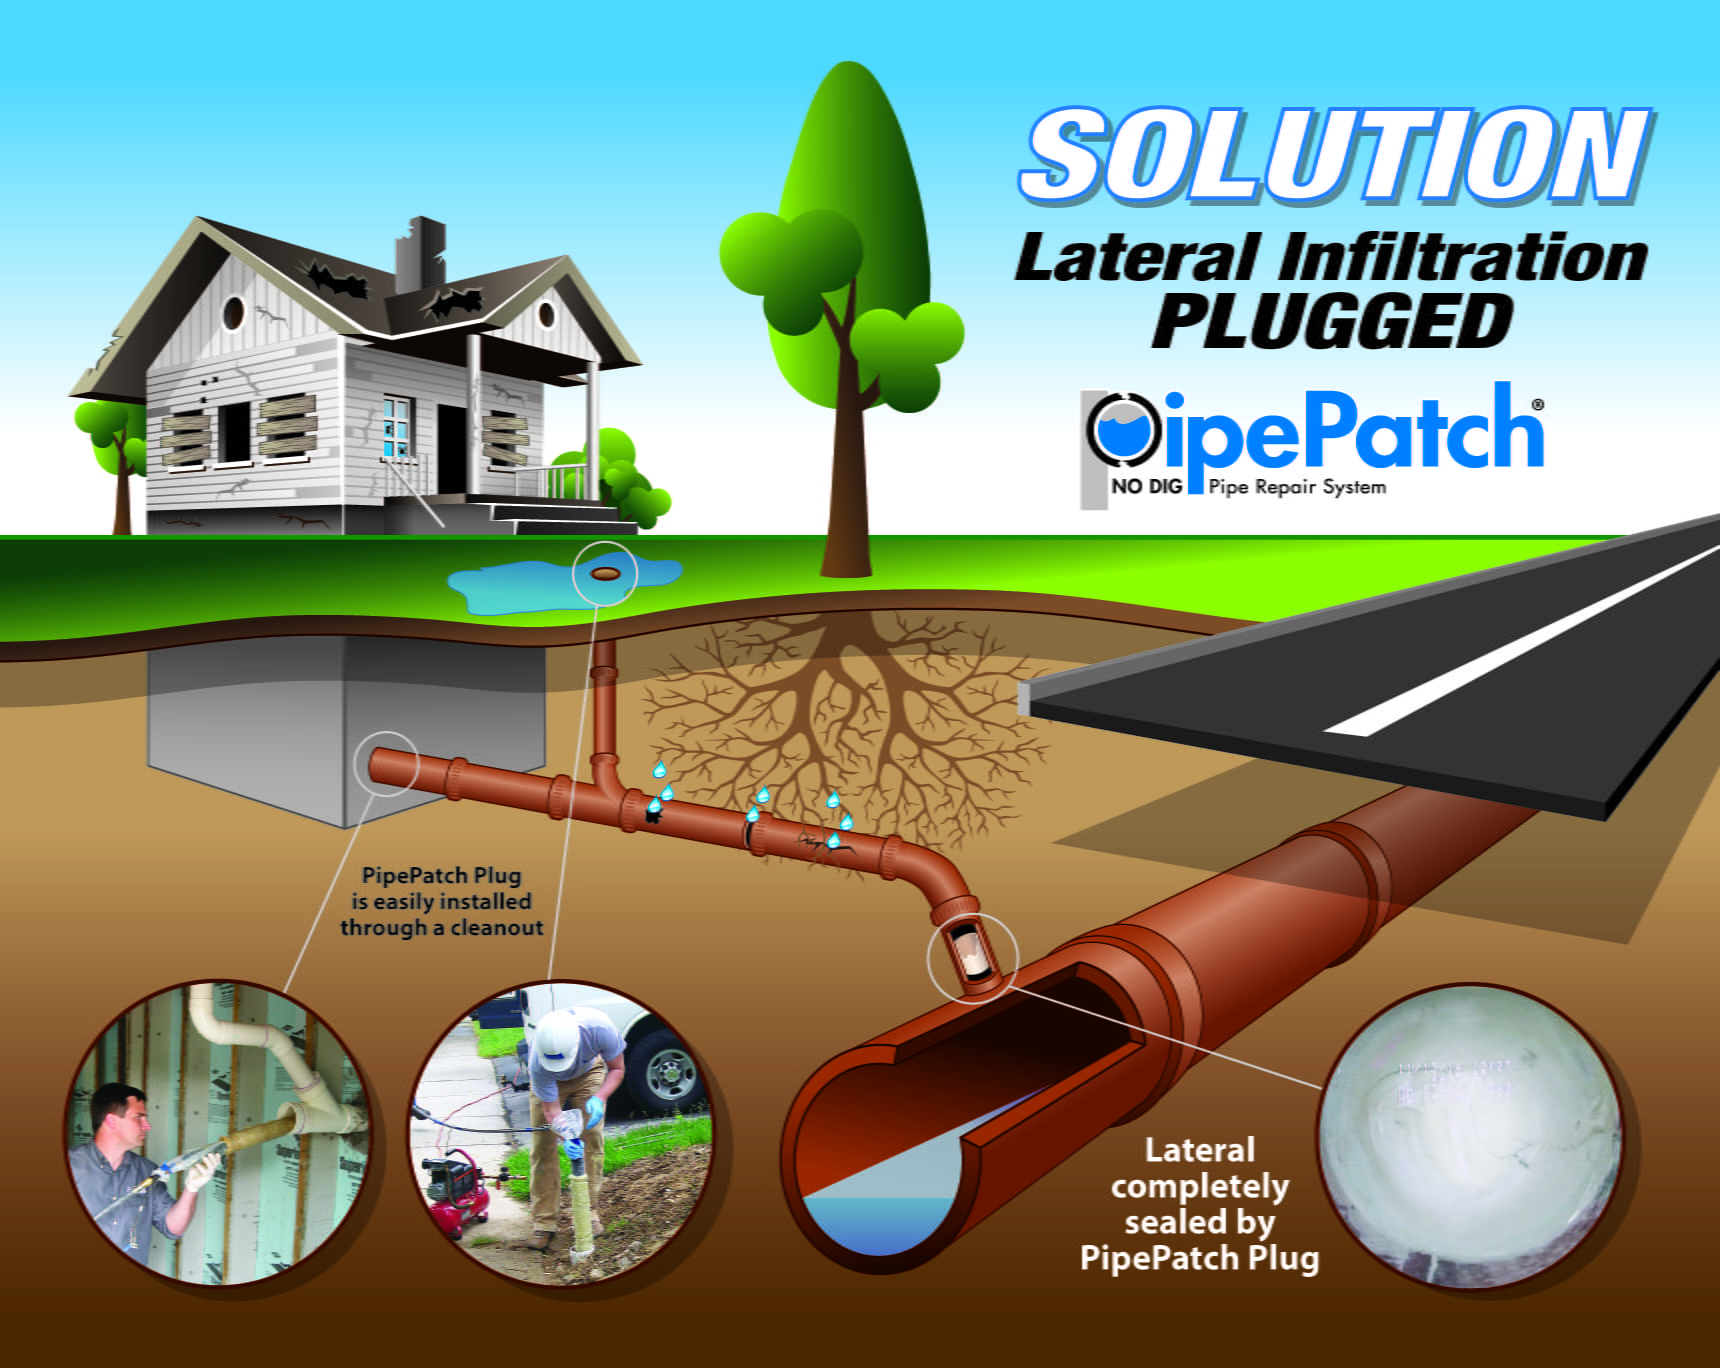 PipePatch PipePlug Repair System